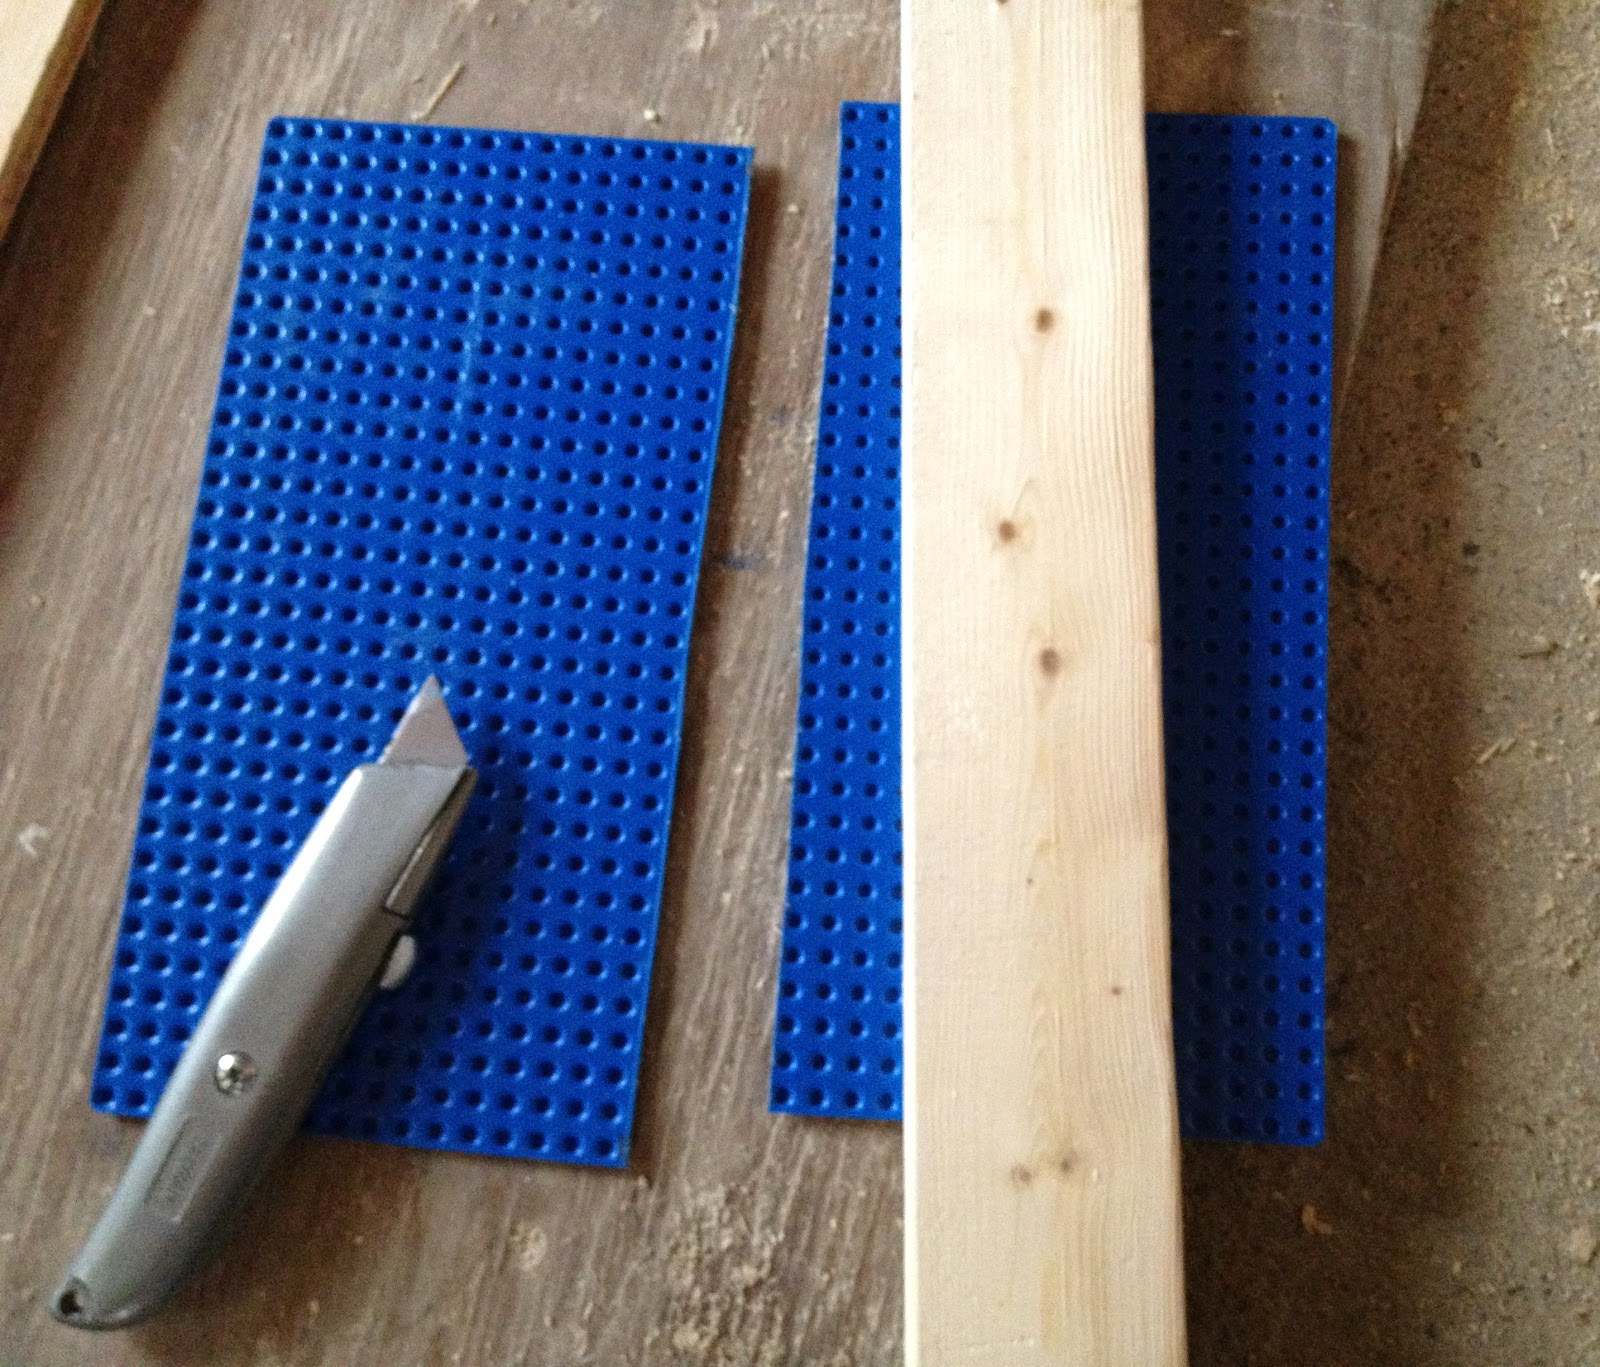 Cover Letter For Lego: DIY Portable Lego Tray Revised